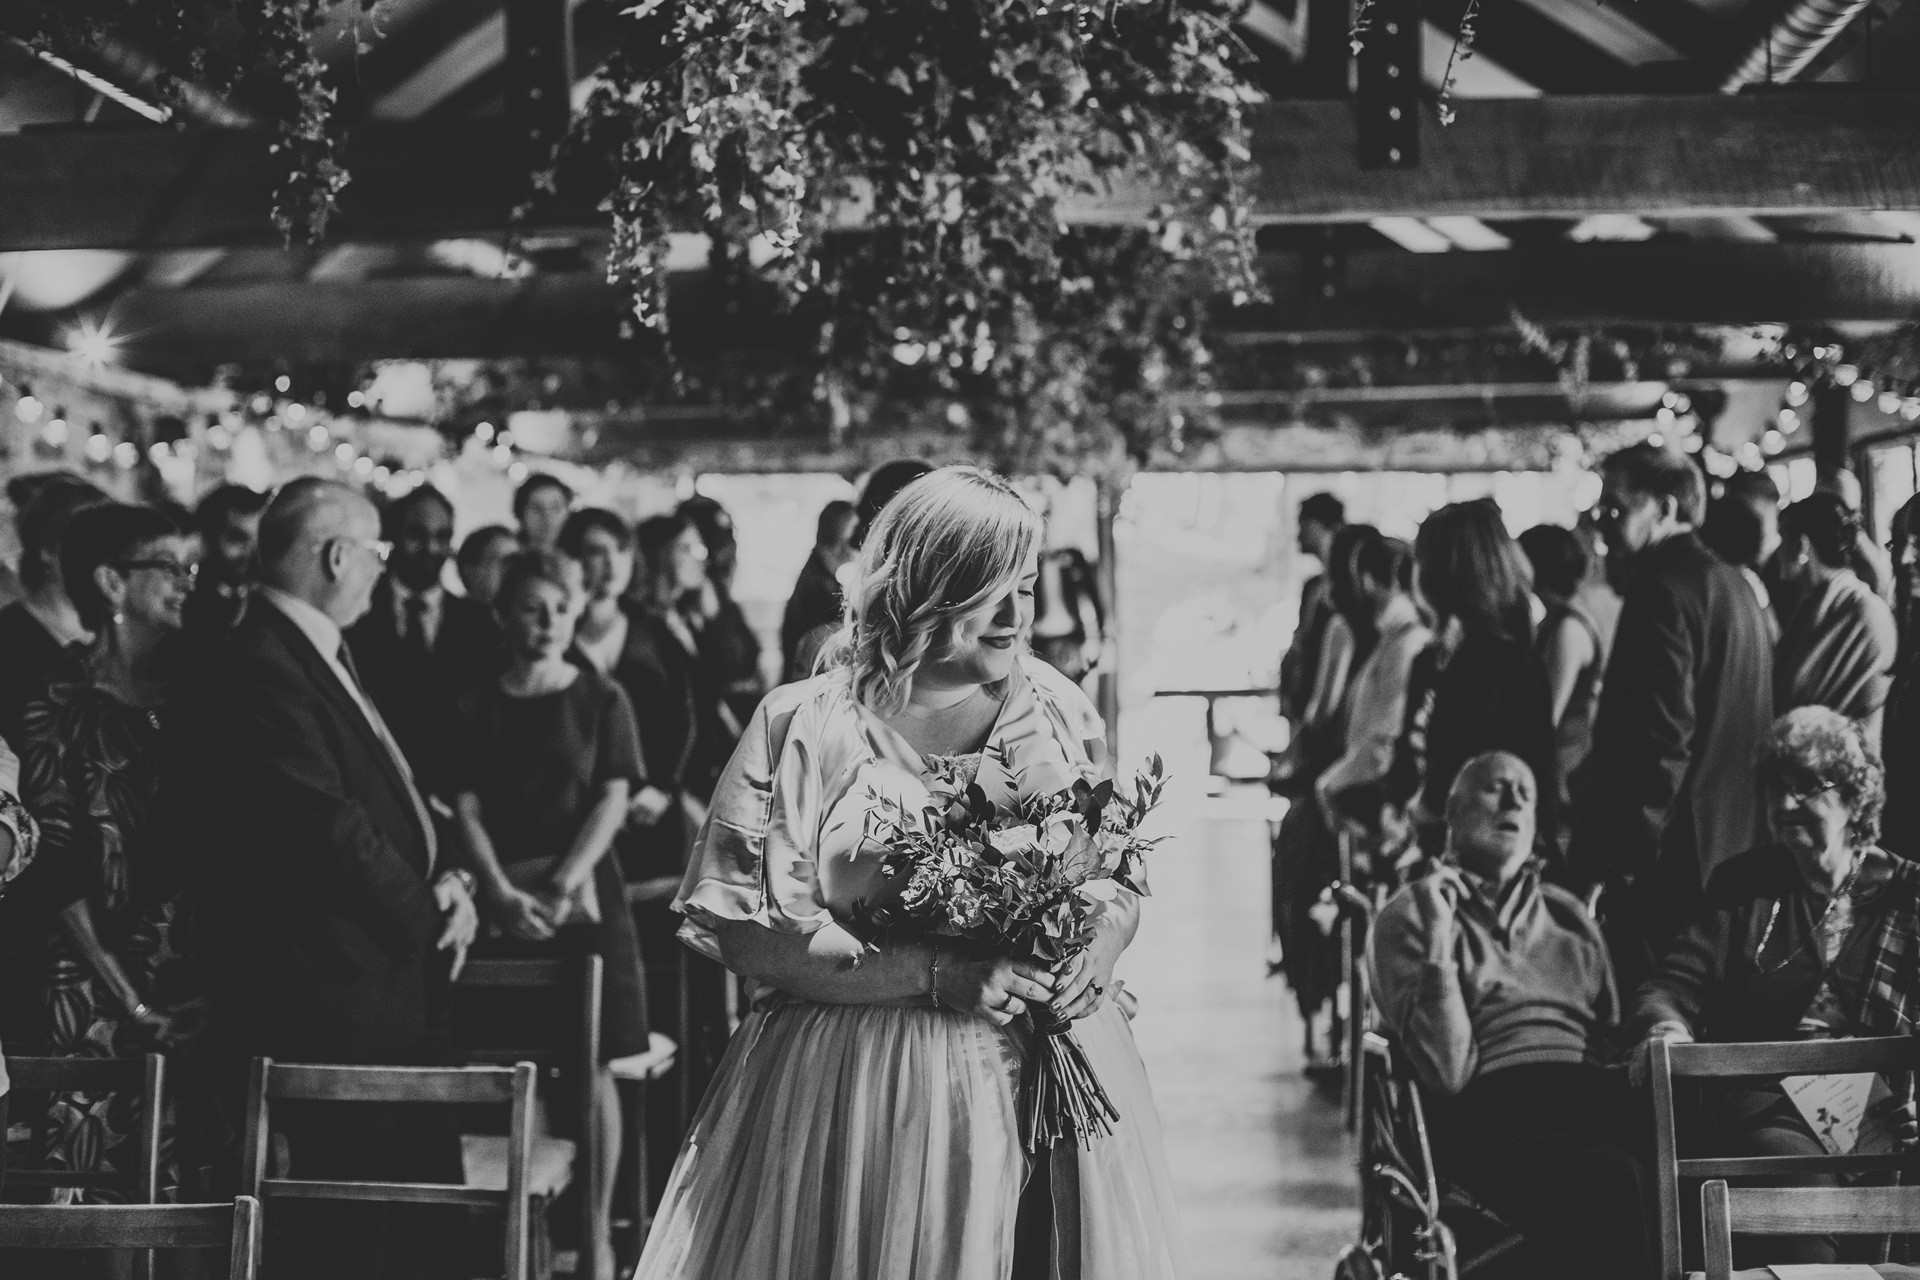 Bridesmaid arrives at bottom of the aisle, photograph in black and white.